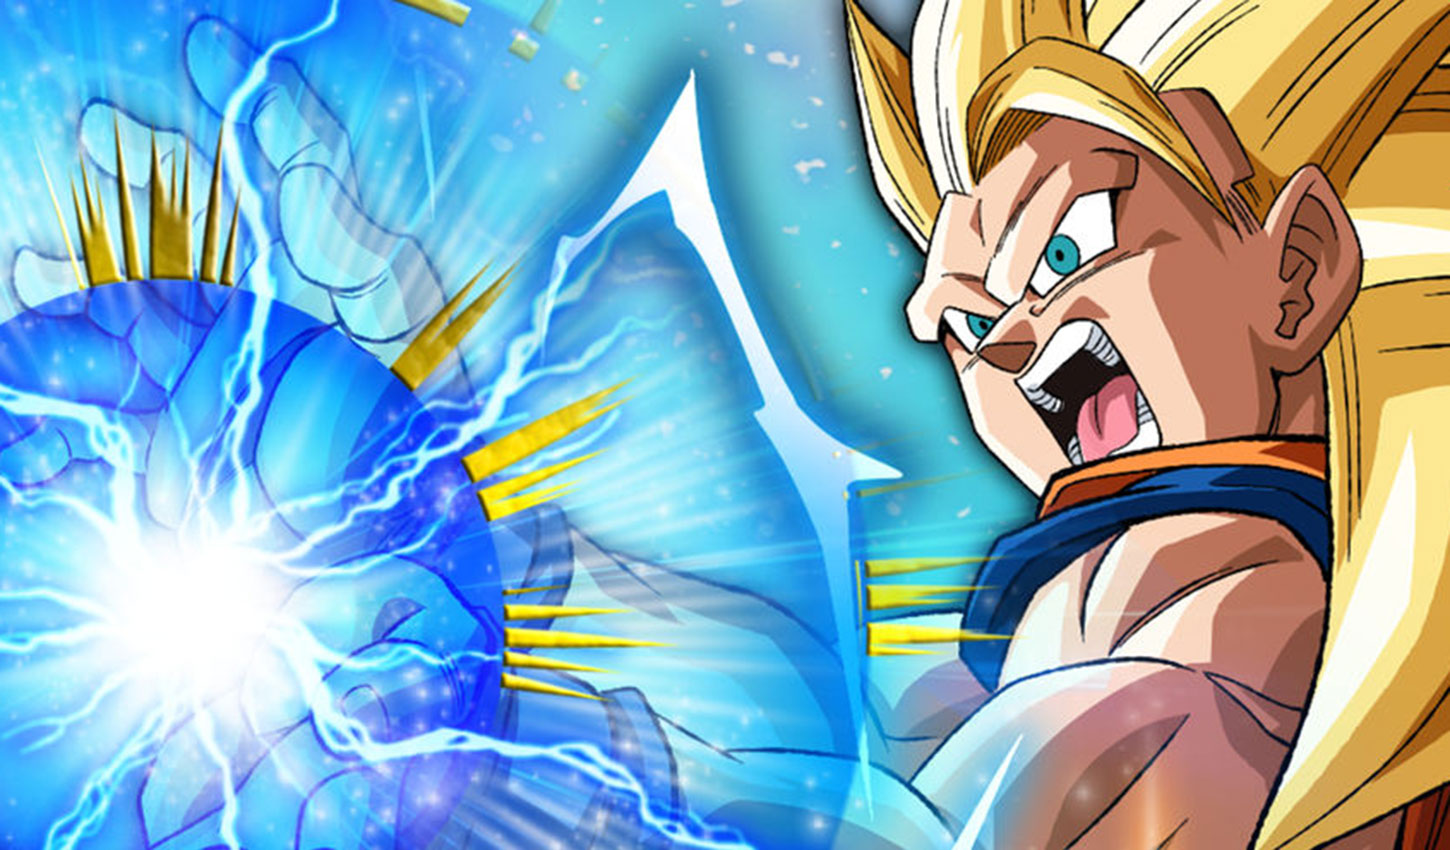 The Top Mobile Games for February 2019: Dokkan Battles Up